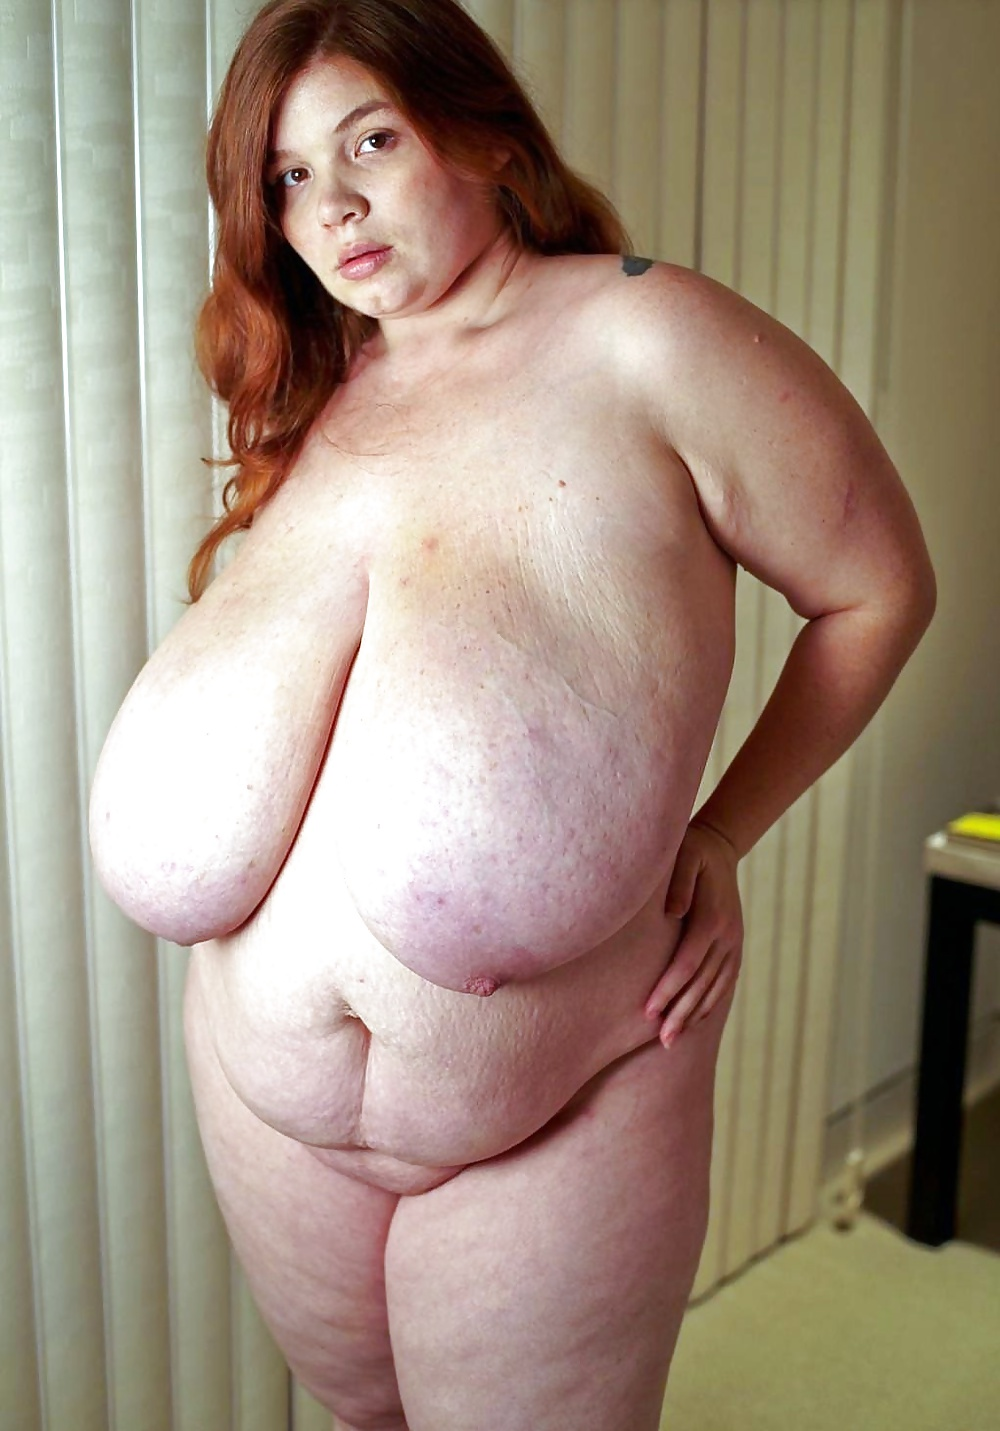 bbw girls hot mature women